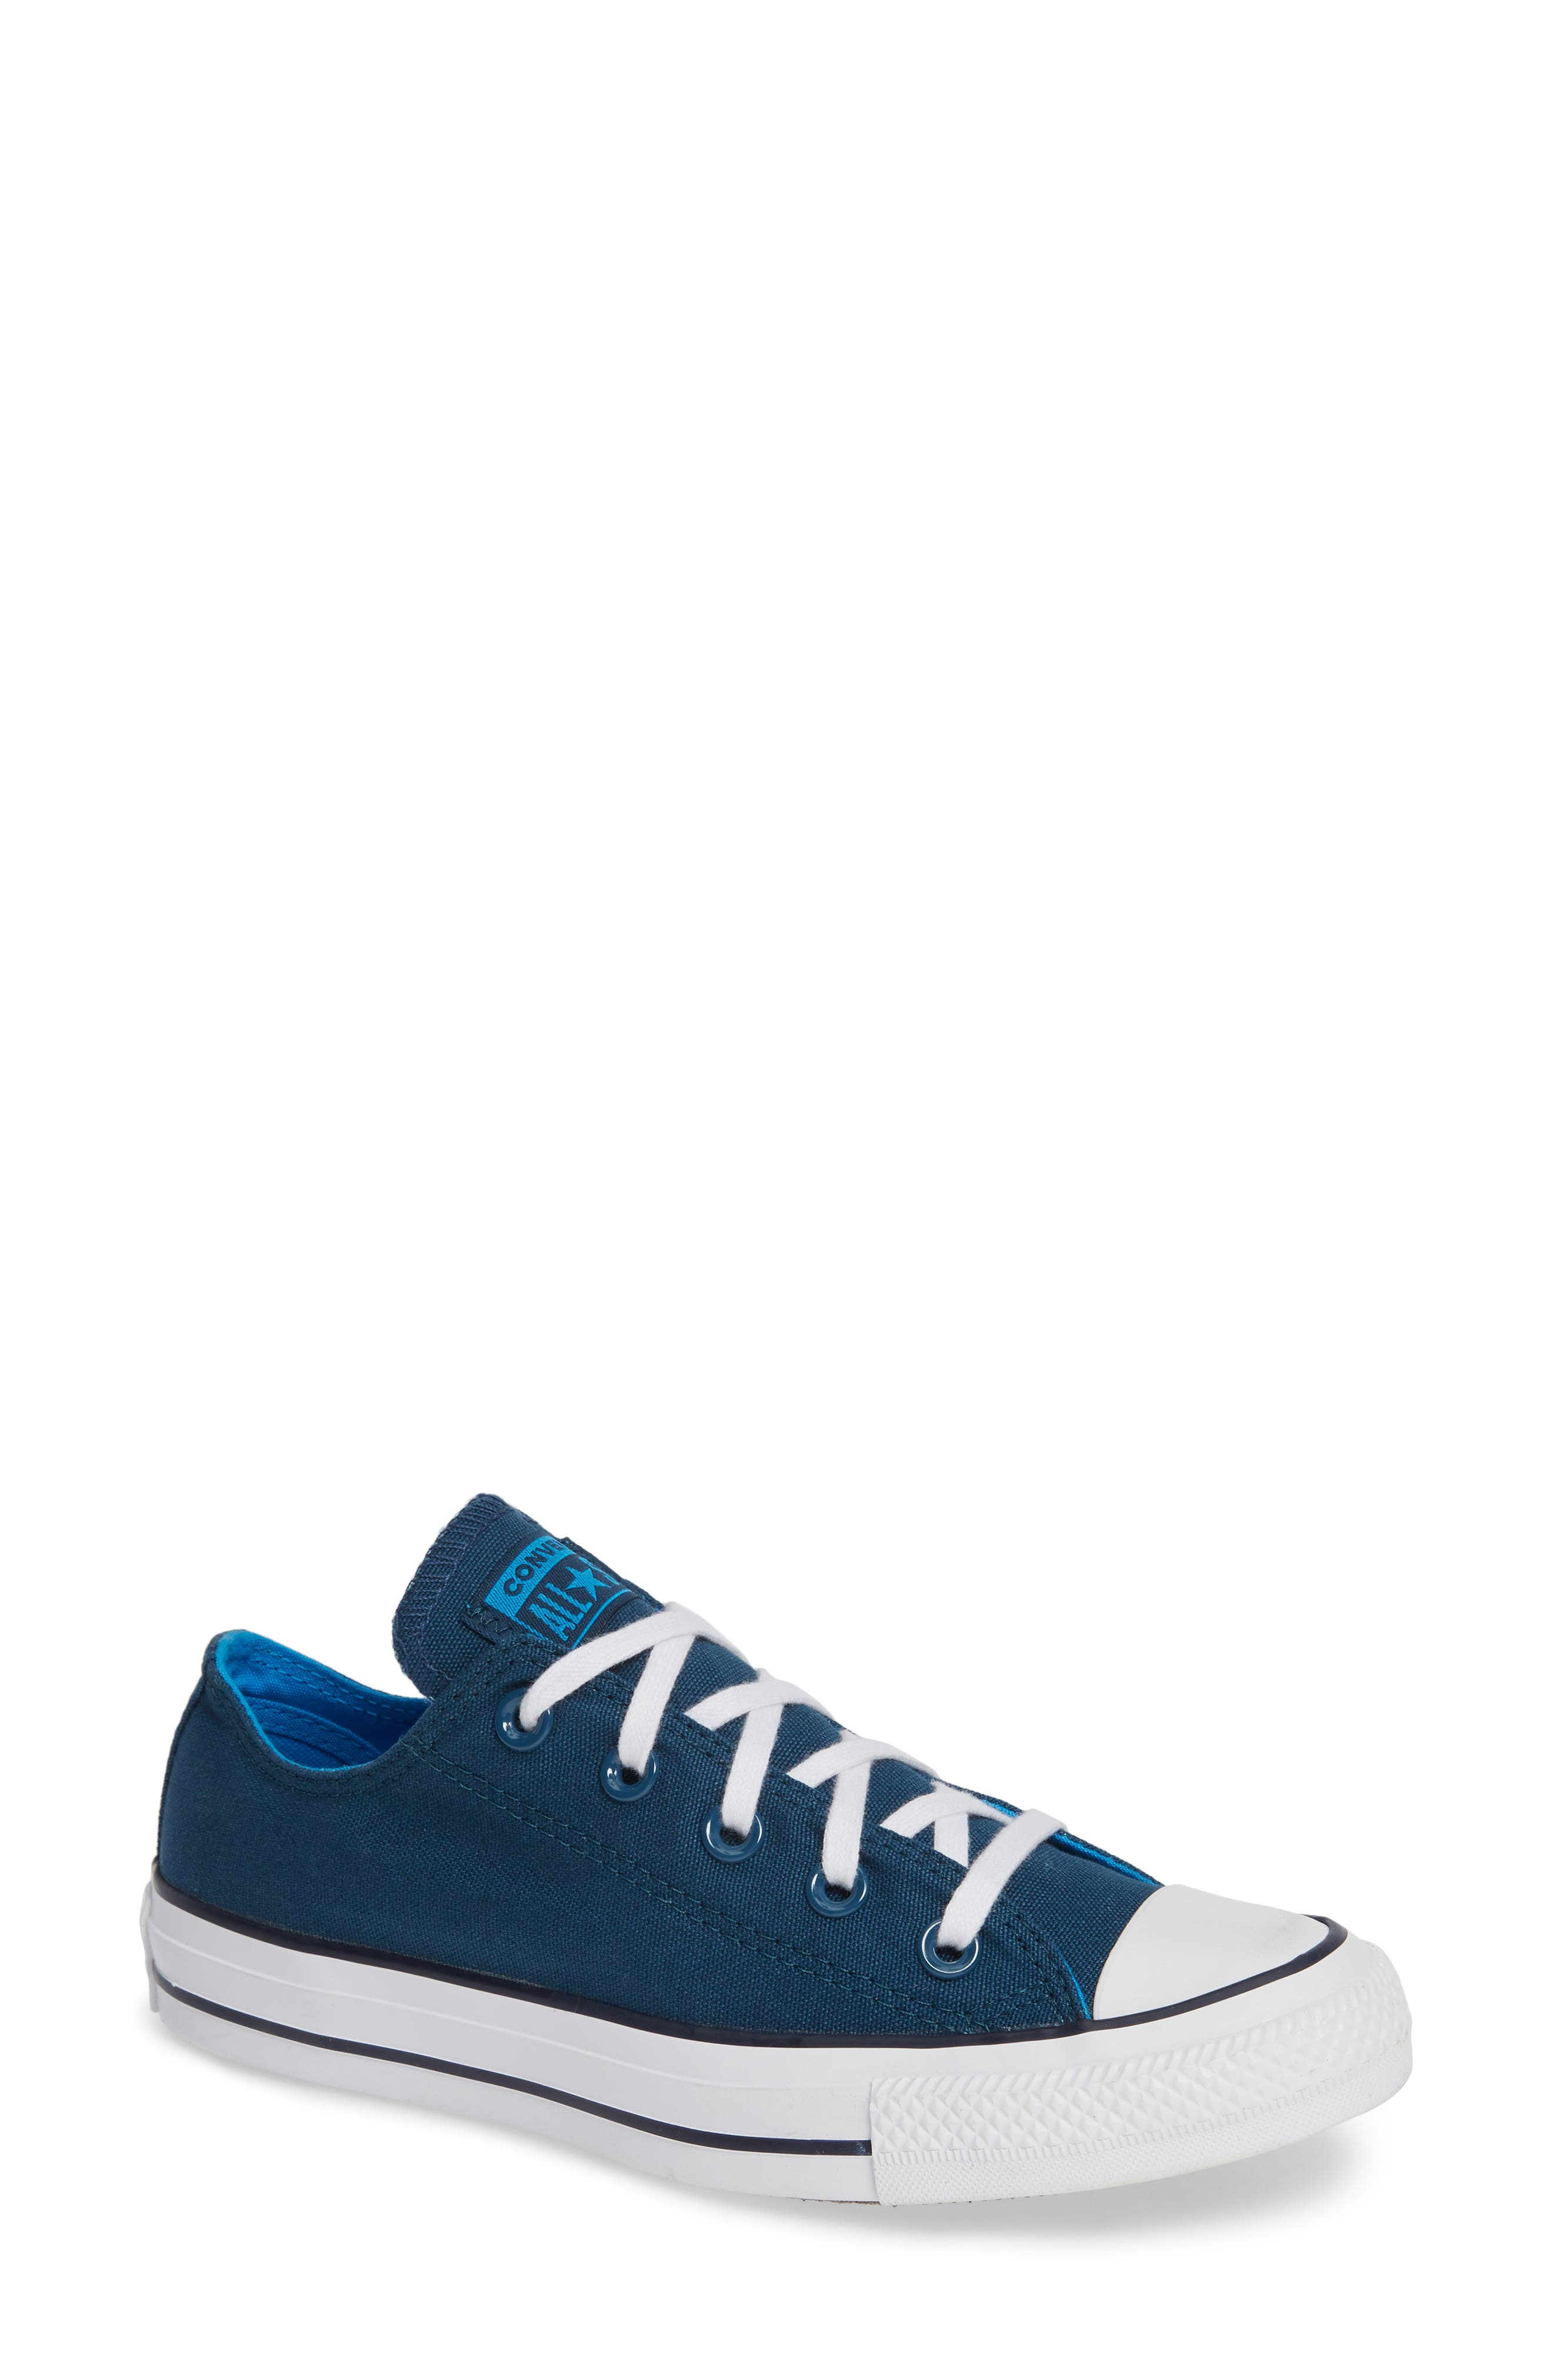 Chuck Taylor<sup>®</sup> All Star<sup>®</sup> Seasonal Ox Low Top Sneaker,                             Main thumbnail 1, color,                             BLUE FIR